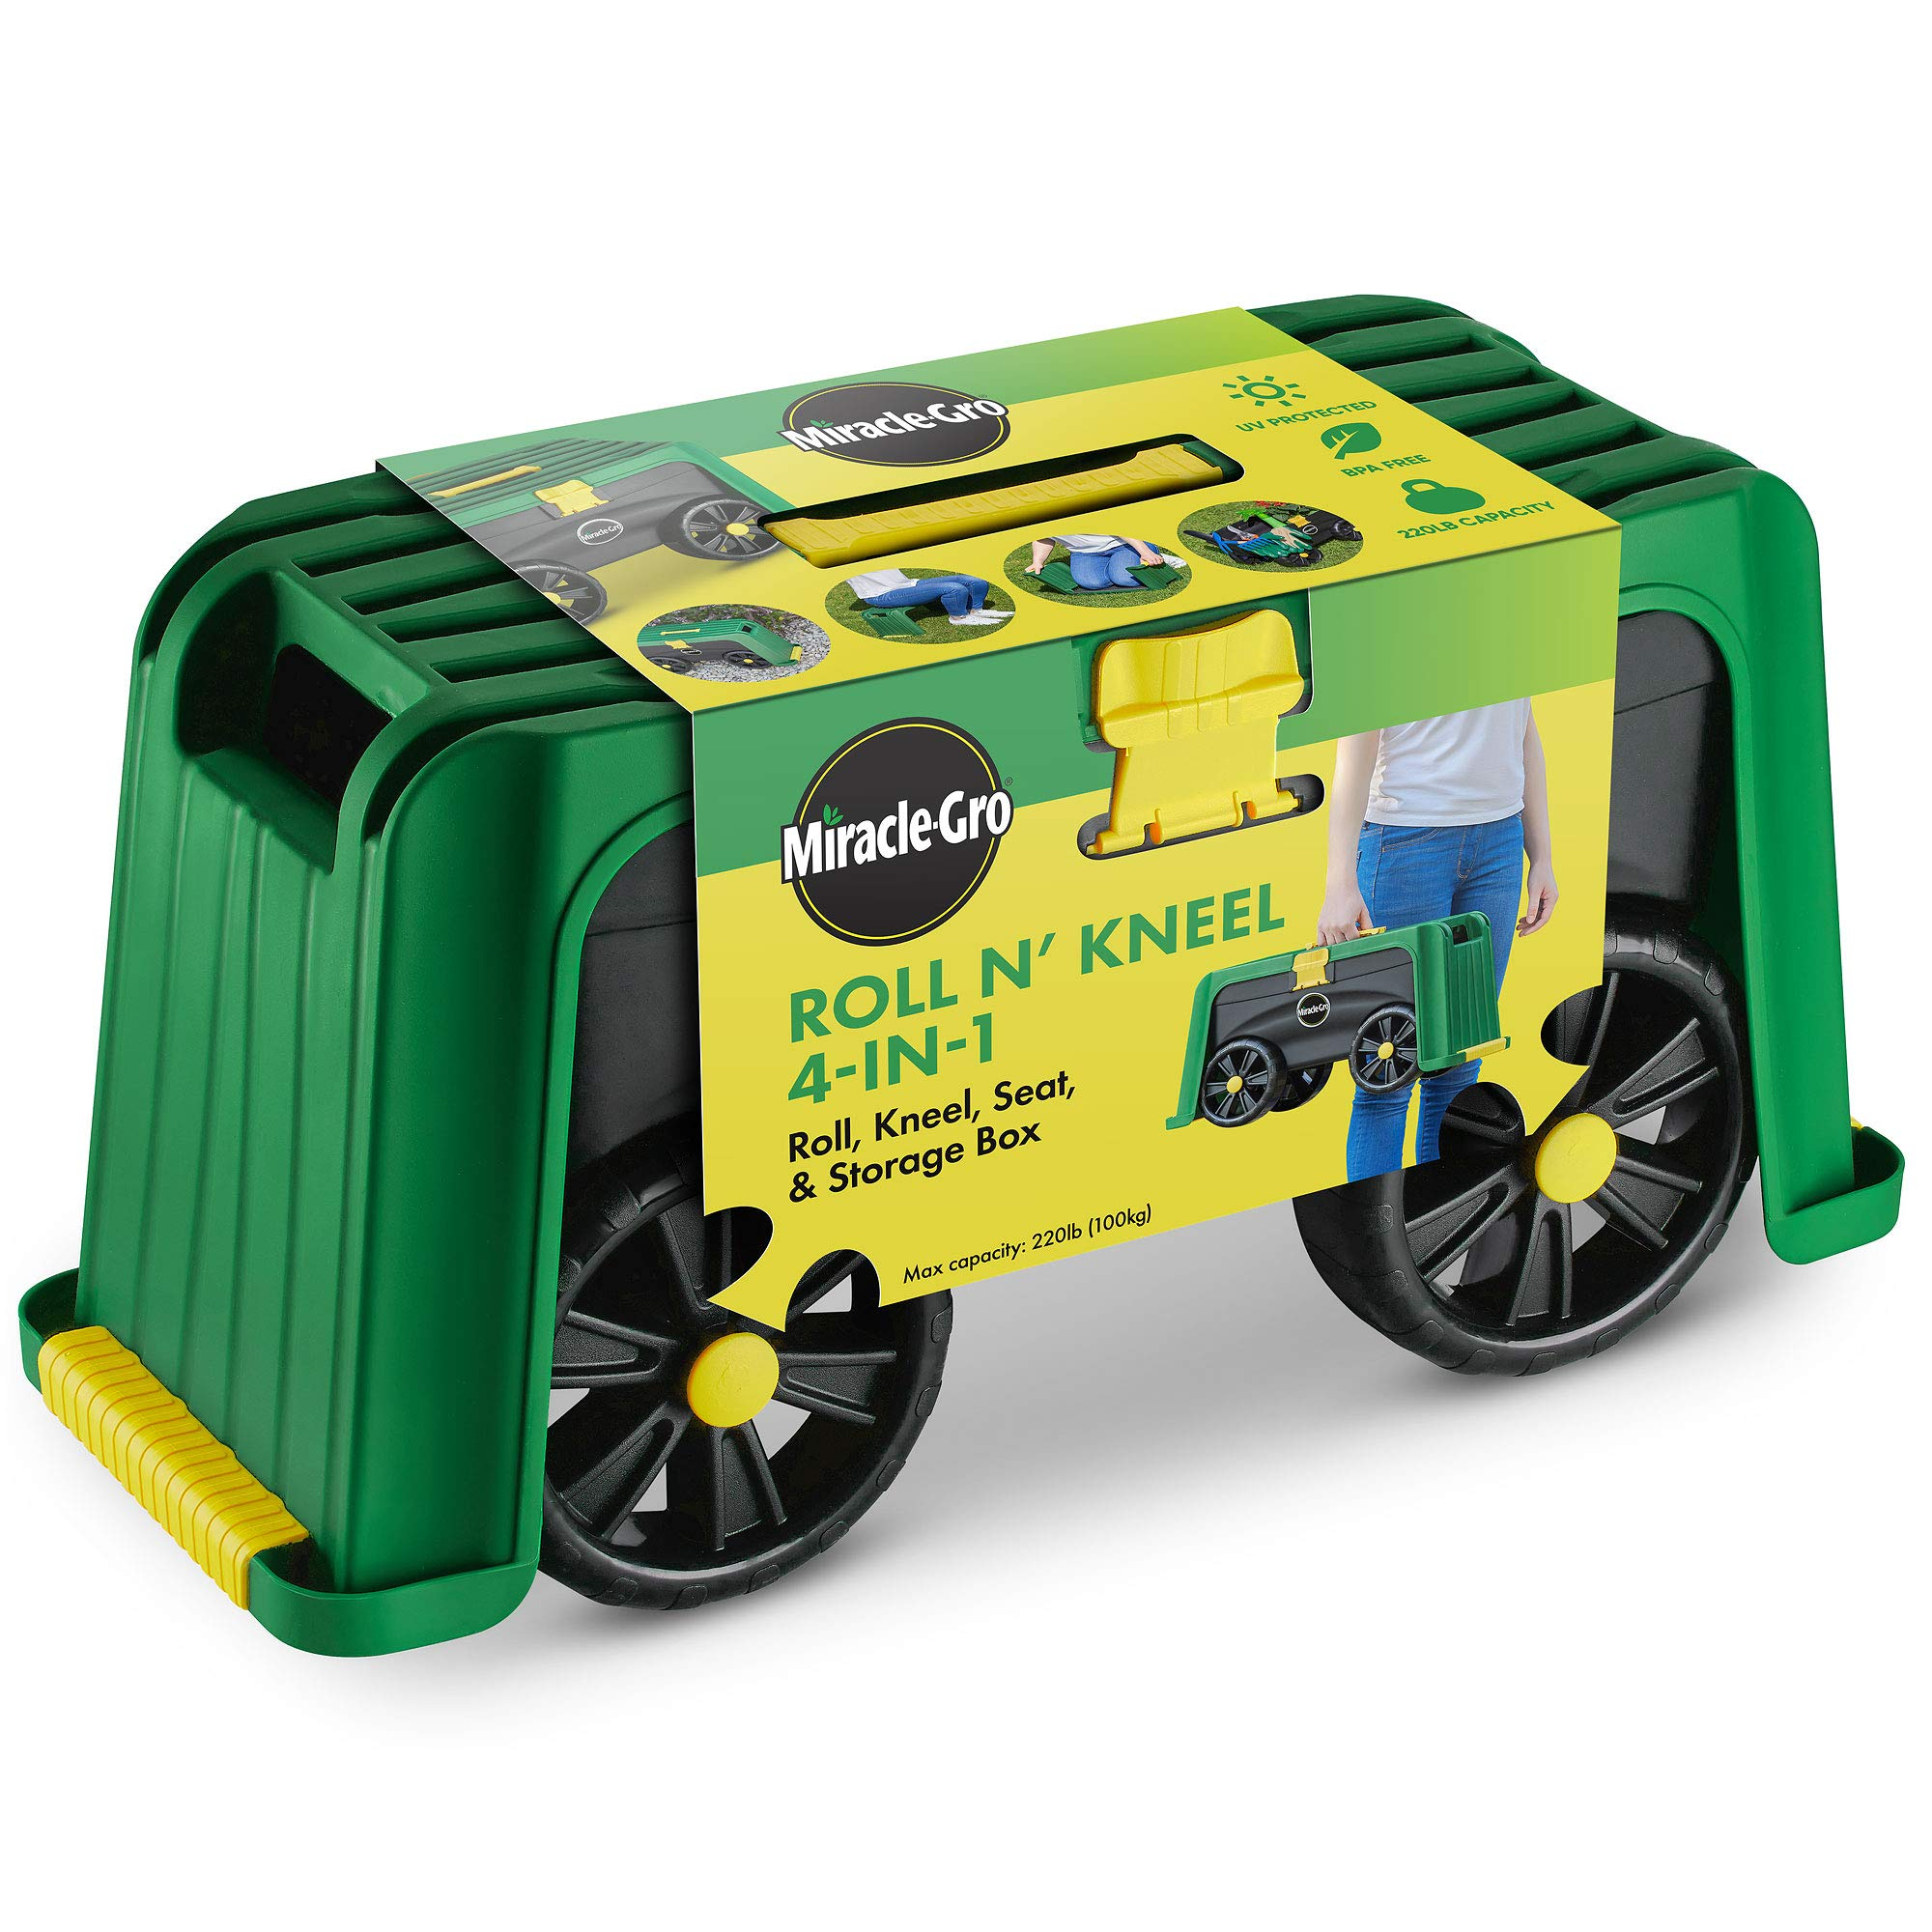 Miracle-Gro 4-in-1 Garden Stool - Multi-Use Garden Scooter with Seat - Rolling Cart with Storage Bin - Padded Kneeler and Tool storage - Accessible Gardening for All Ages + FREE Scotts Gardening Glove by Miracle-Gro